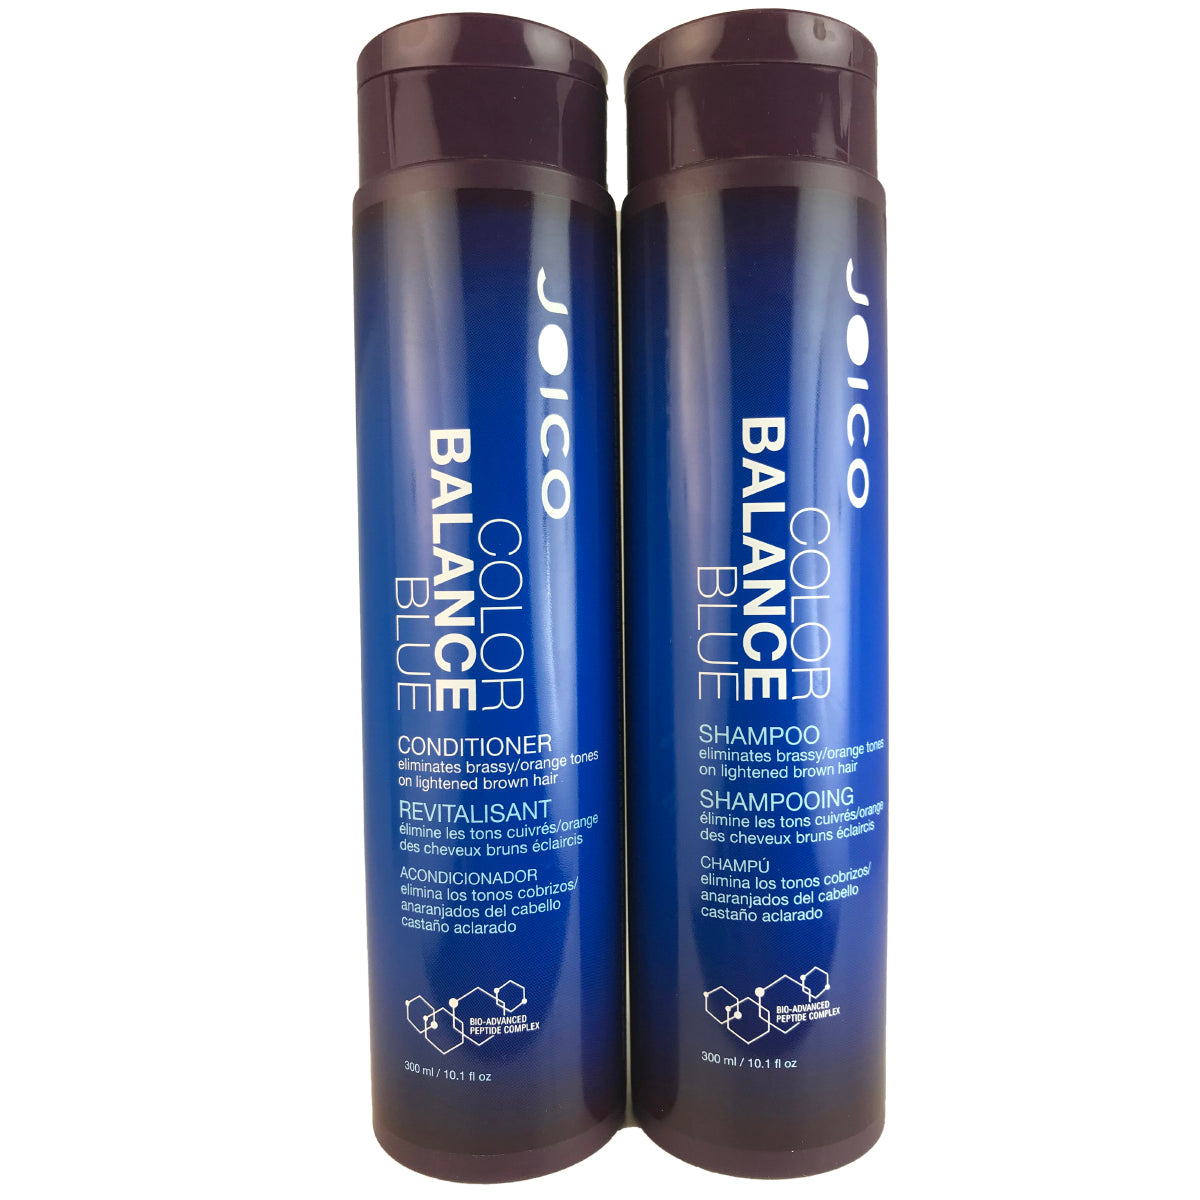 JOICO Color Balance Blue Shampoo & Conditioner Duo 10.1 oz each Eliminates Brassy/Orange Tones on lightened Brown Hair